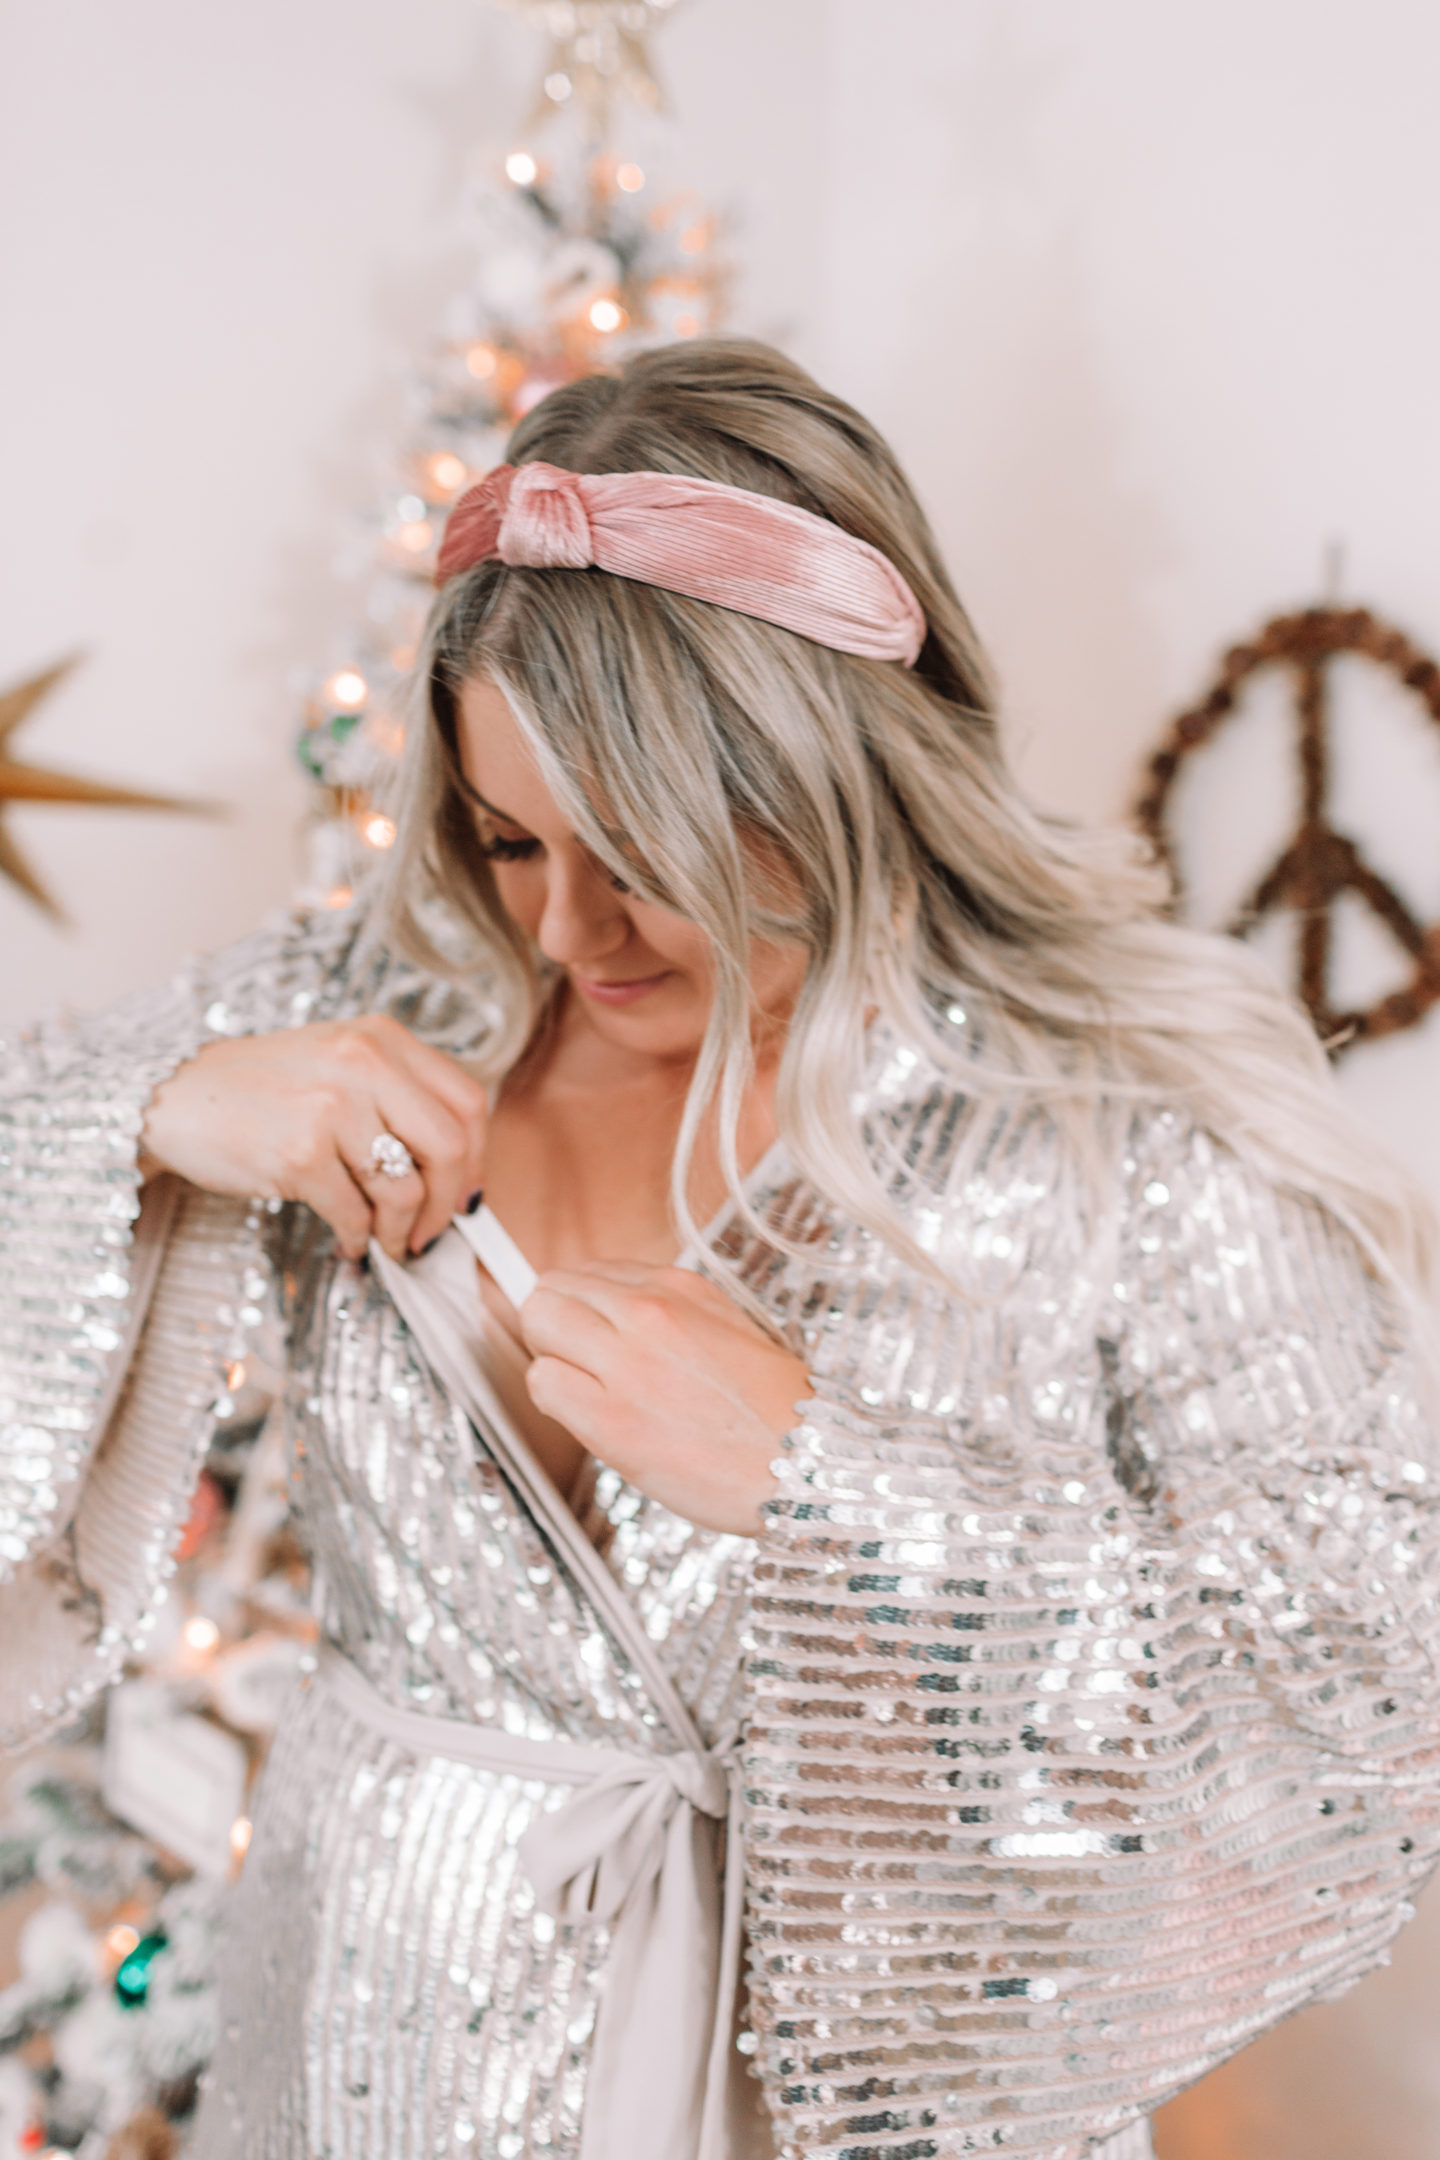 holiday sequin dress Dress // Confidently This Holiday Season with Fearless Tape // wanderabode.com